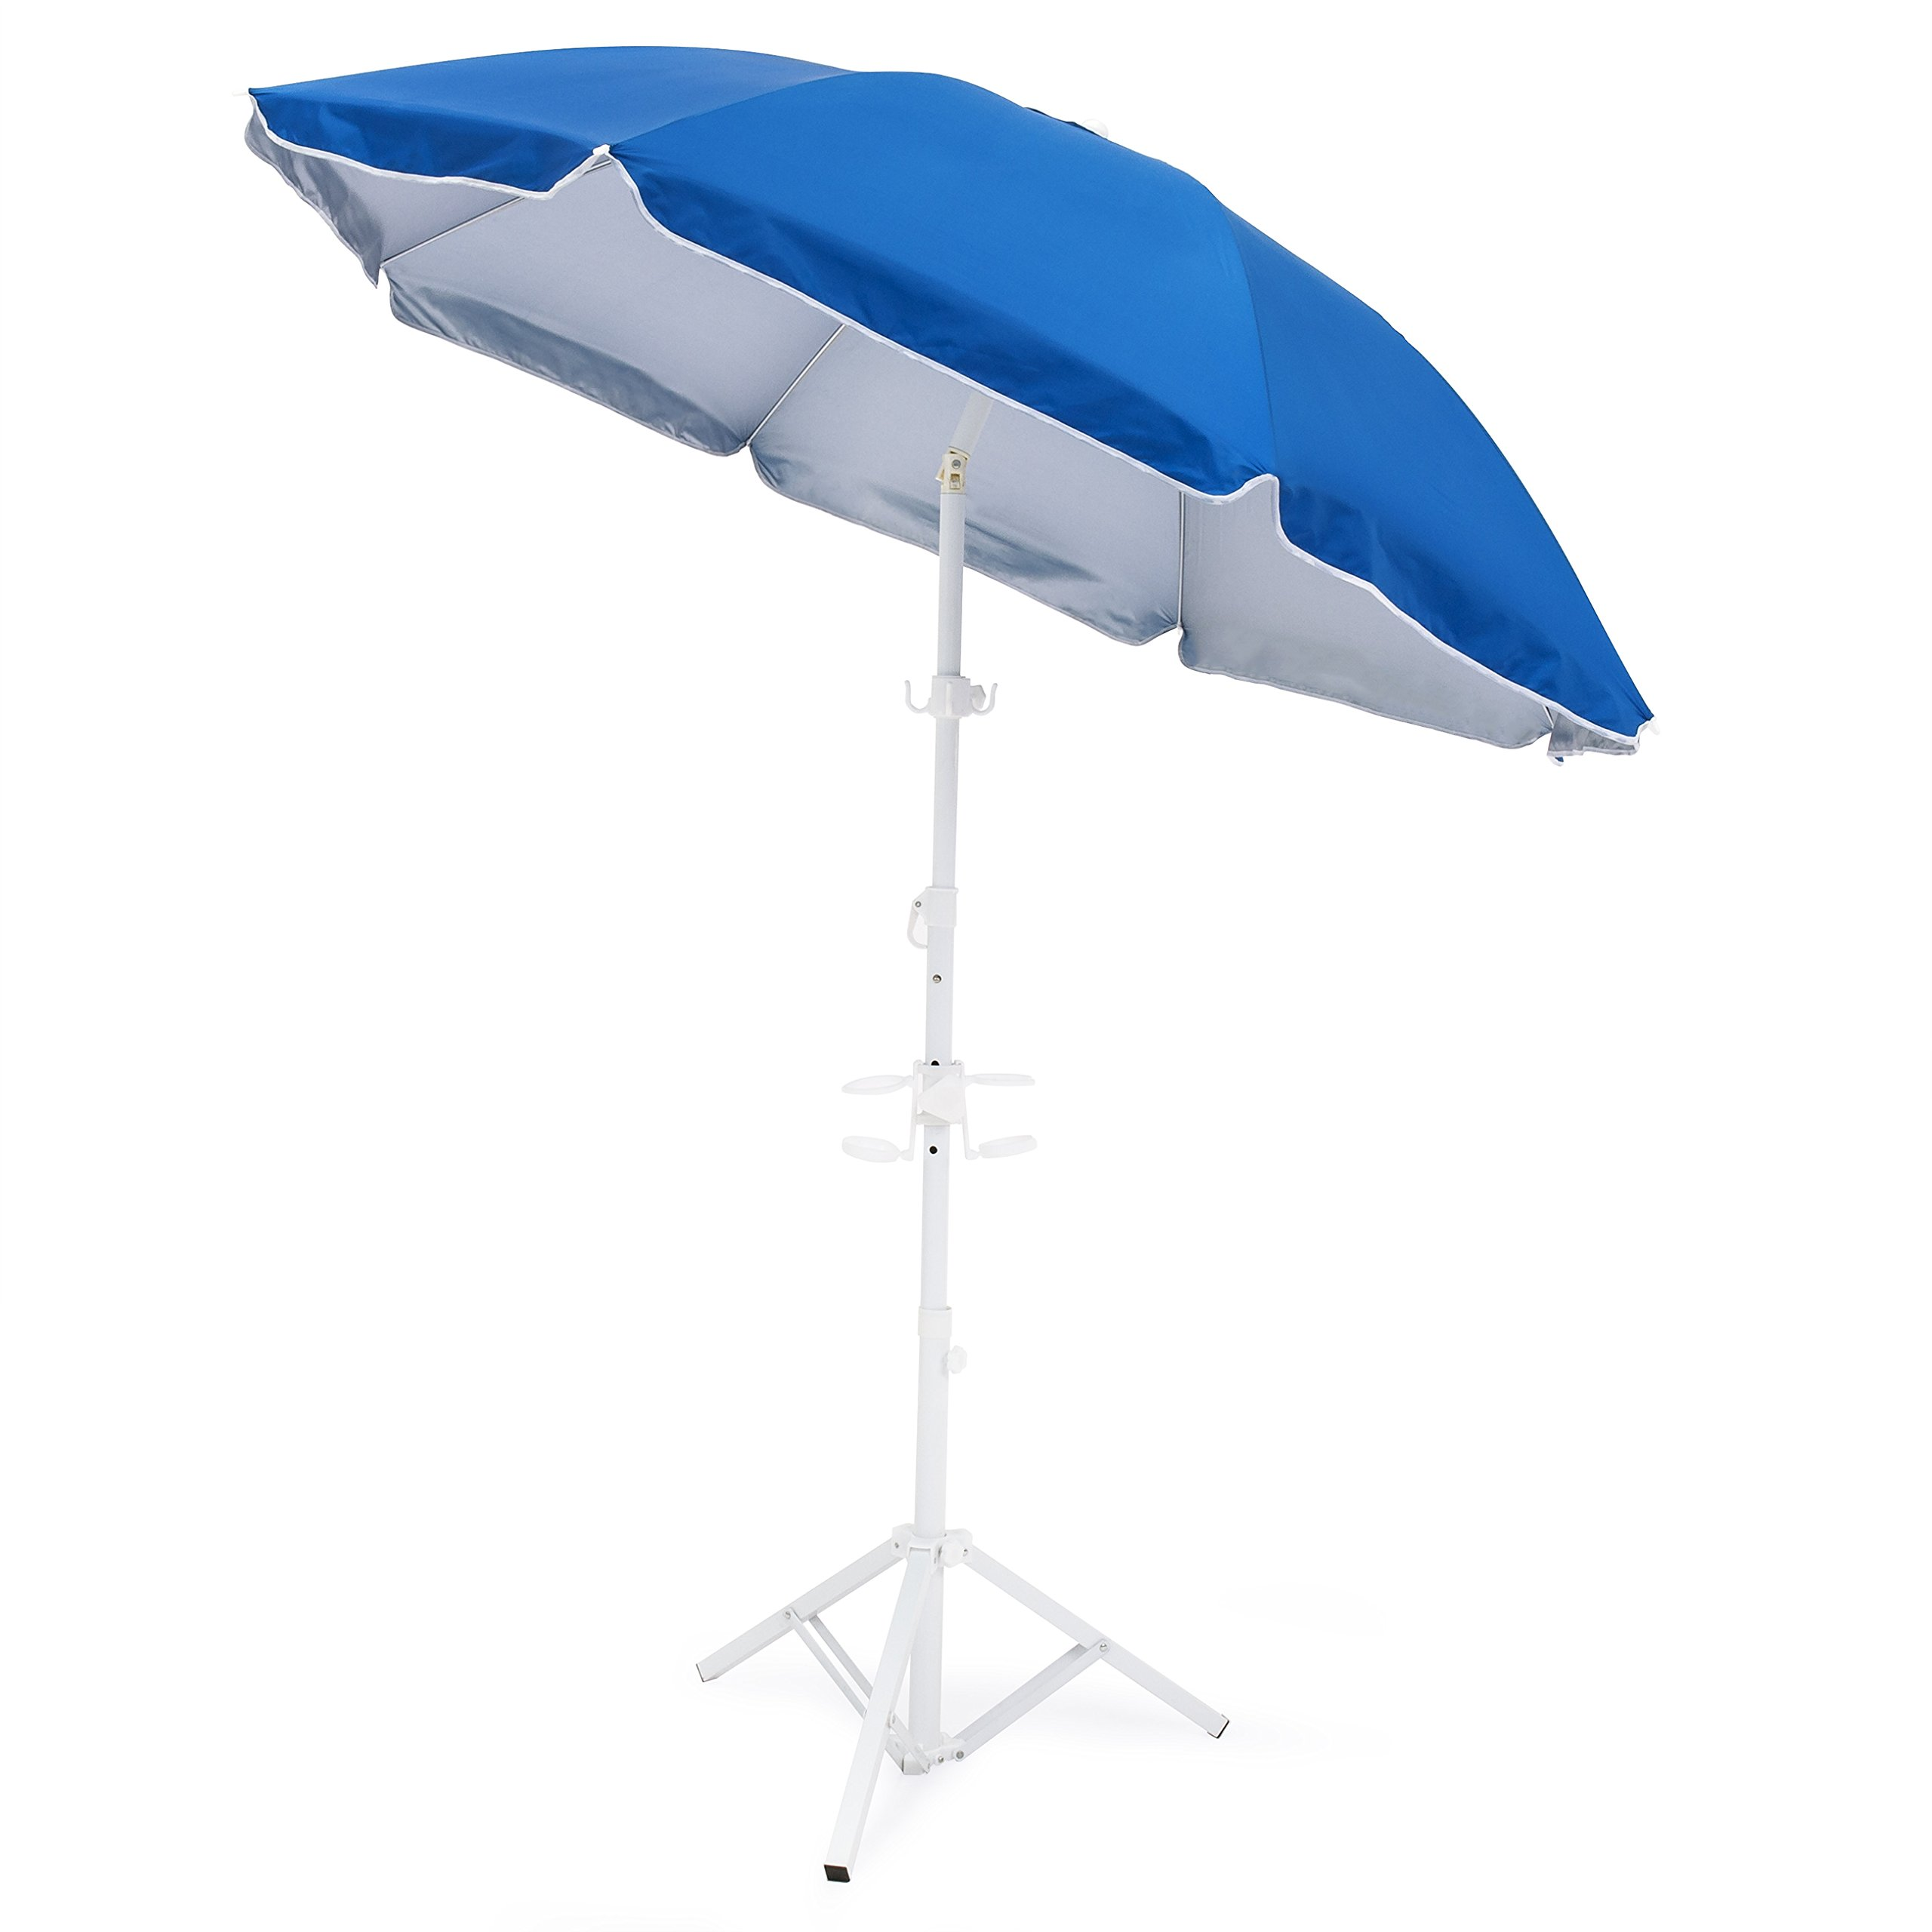 Best Choice Products 5.5ft Beach Umbrella w/Tripod Base and Carrying Case by Best Choice Products